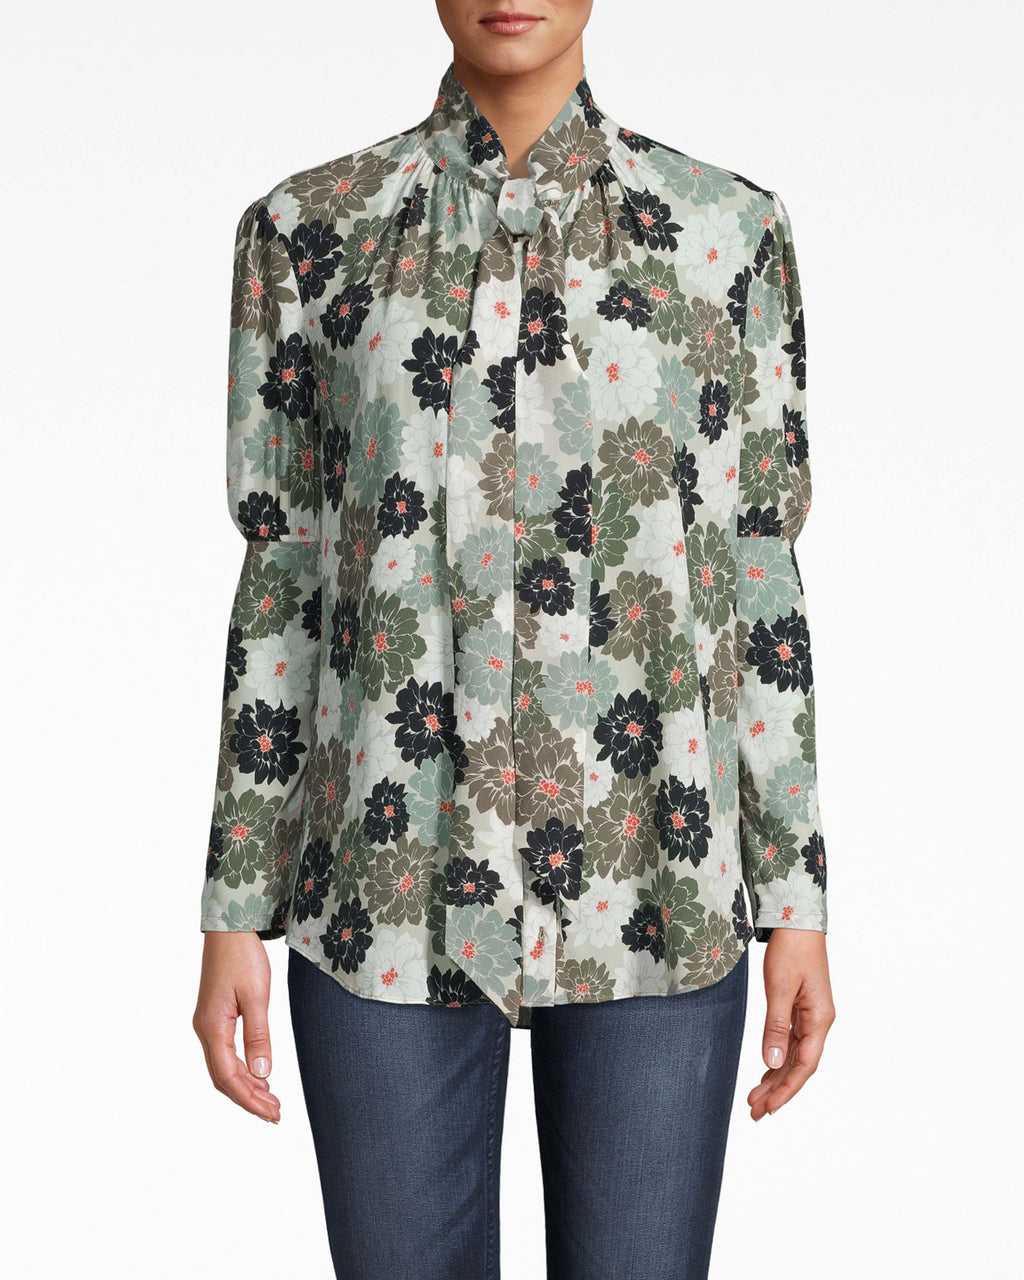 CT17988 - CAMO DELILAH SILK STOCK TIE BLOUSE - tops - blouses - THIS LIGHTWEIGHT SILK TOP IS PERFECT FOR EASING FROM SUMMER TO FALL. THIS STATEMENT PIECE HAS PUFF SLEEVES WITH A PRETTY TIE COLLAR. Add 1 line break STYLIST TIP: WEAR UNBUTTONED WITH JEANS FOR A CASUAL LOOK OR BUTTON UP FOR FORMAL AFFAIRS.